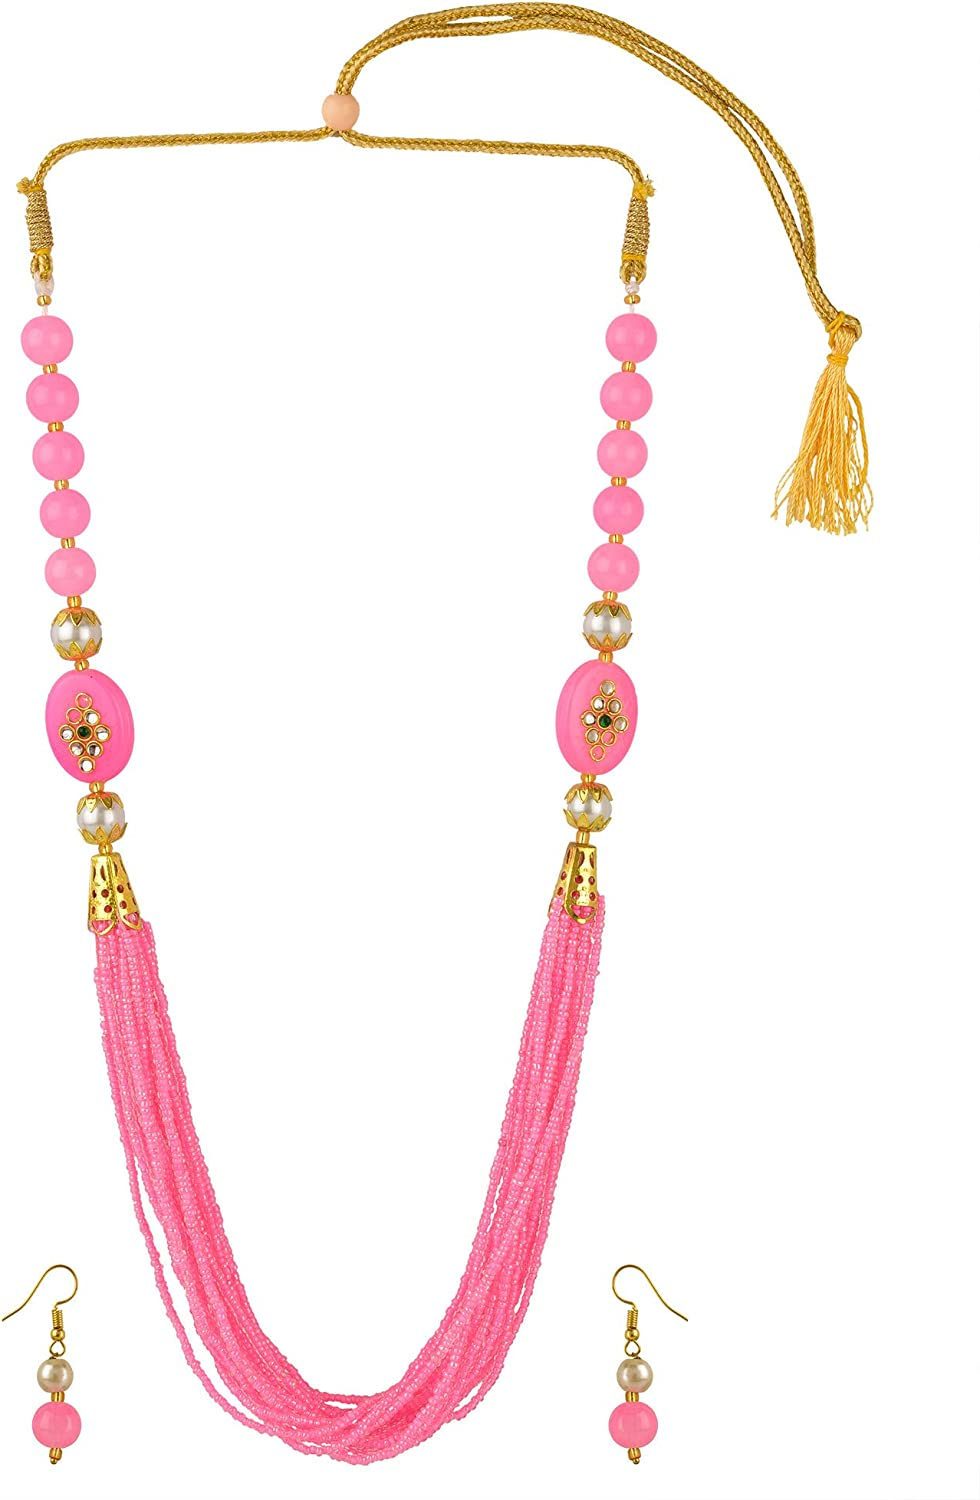 Efulgenz Indian Bollywood Multi Layered Faux Pink Pearl Beads Bridal Strand Necklace Earrings Wedding Jewelry Set